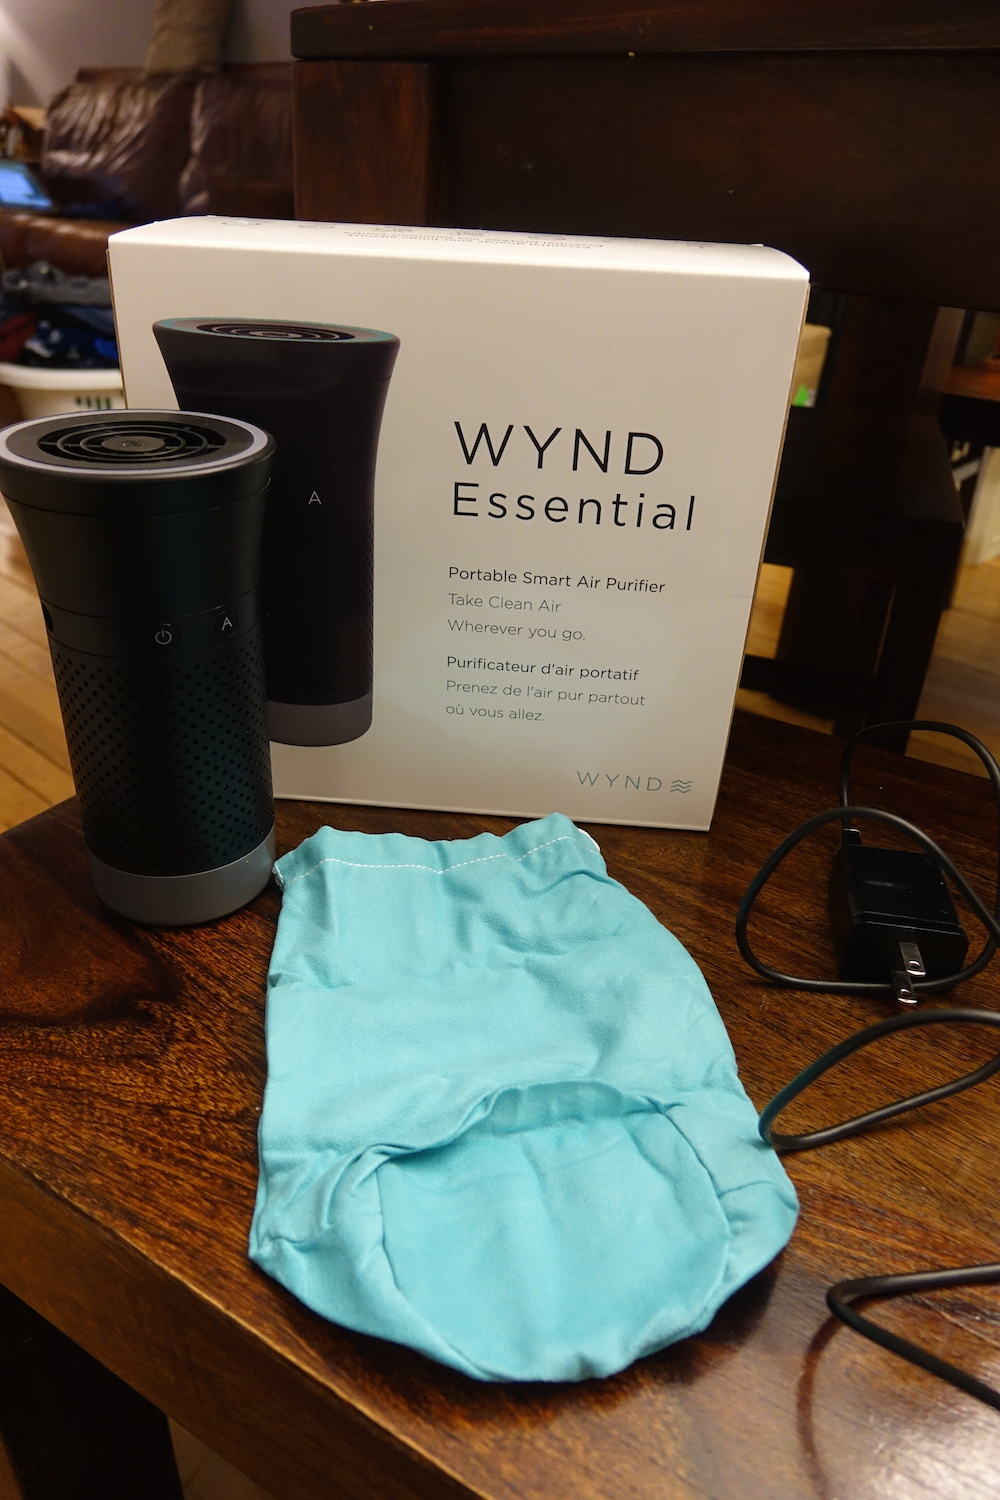 wind essential personal air purifier review - wynd essential smart air purifier in box